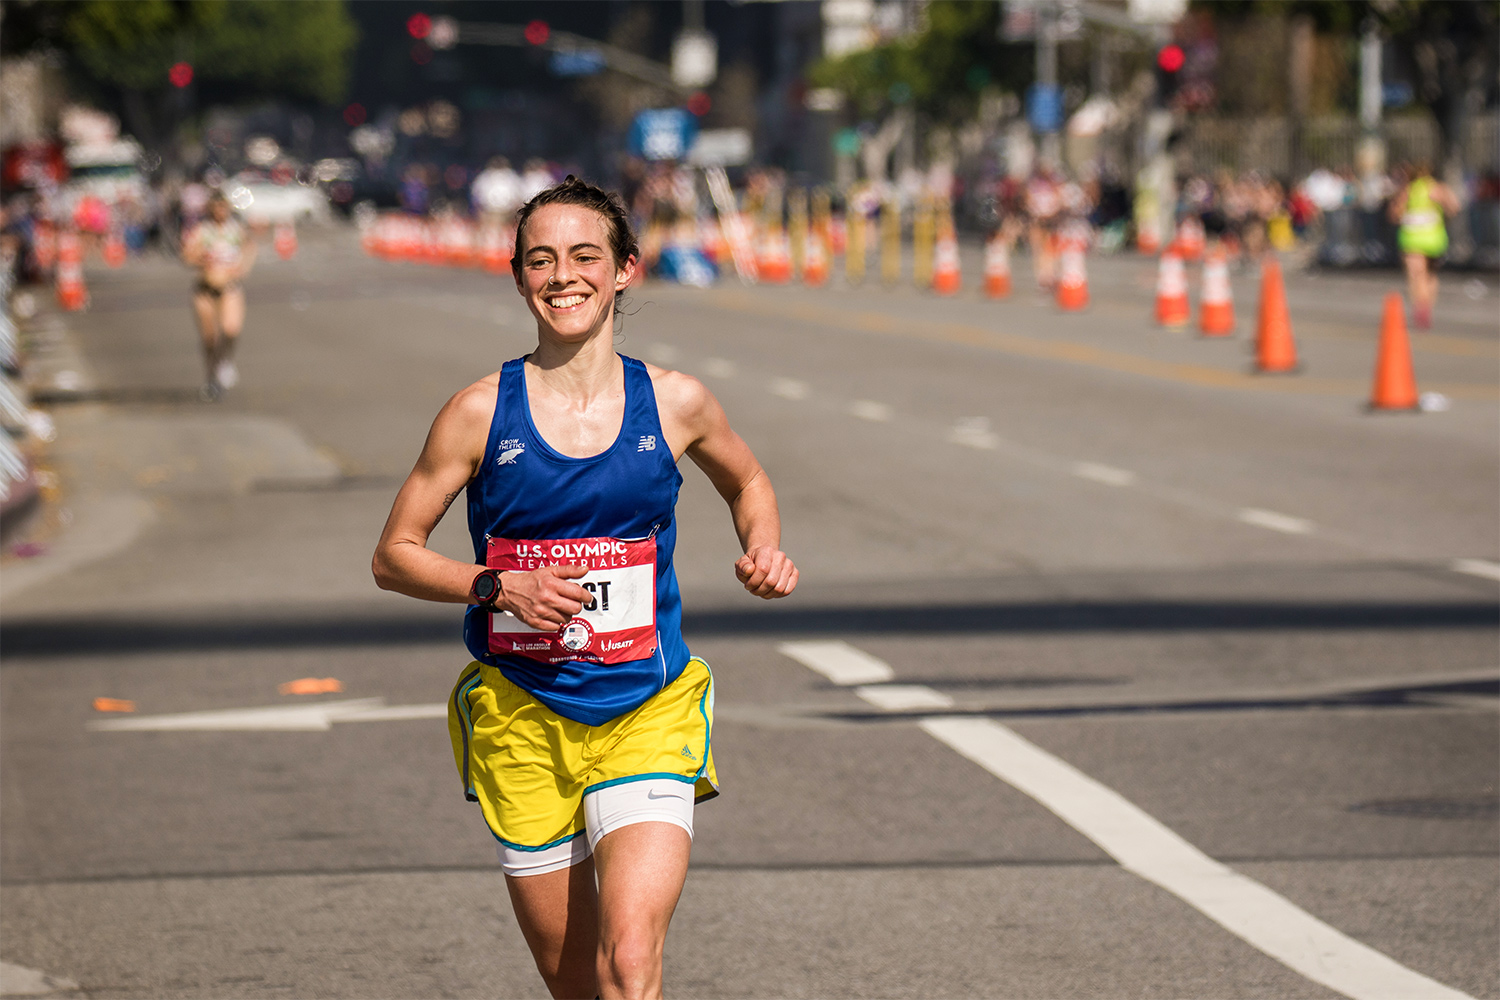 Leah Frost, 2016 Olympic Marathon Trials